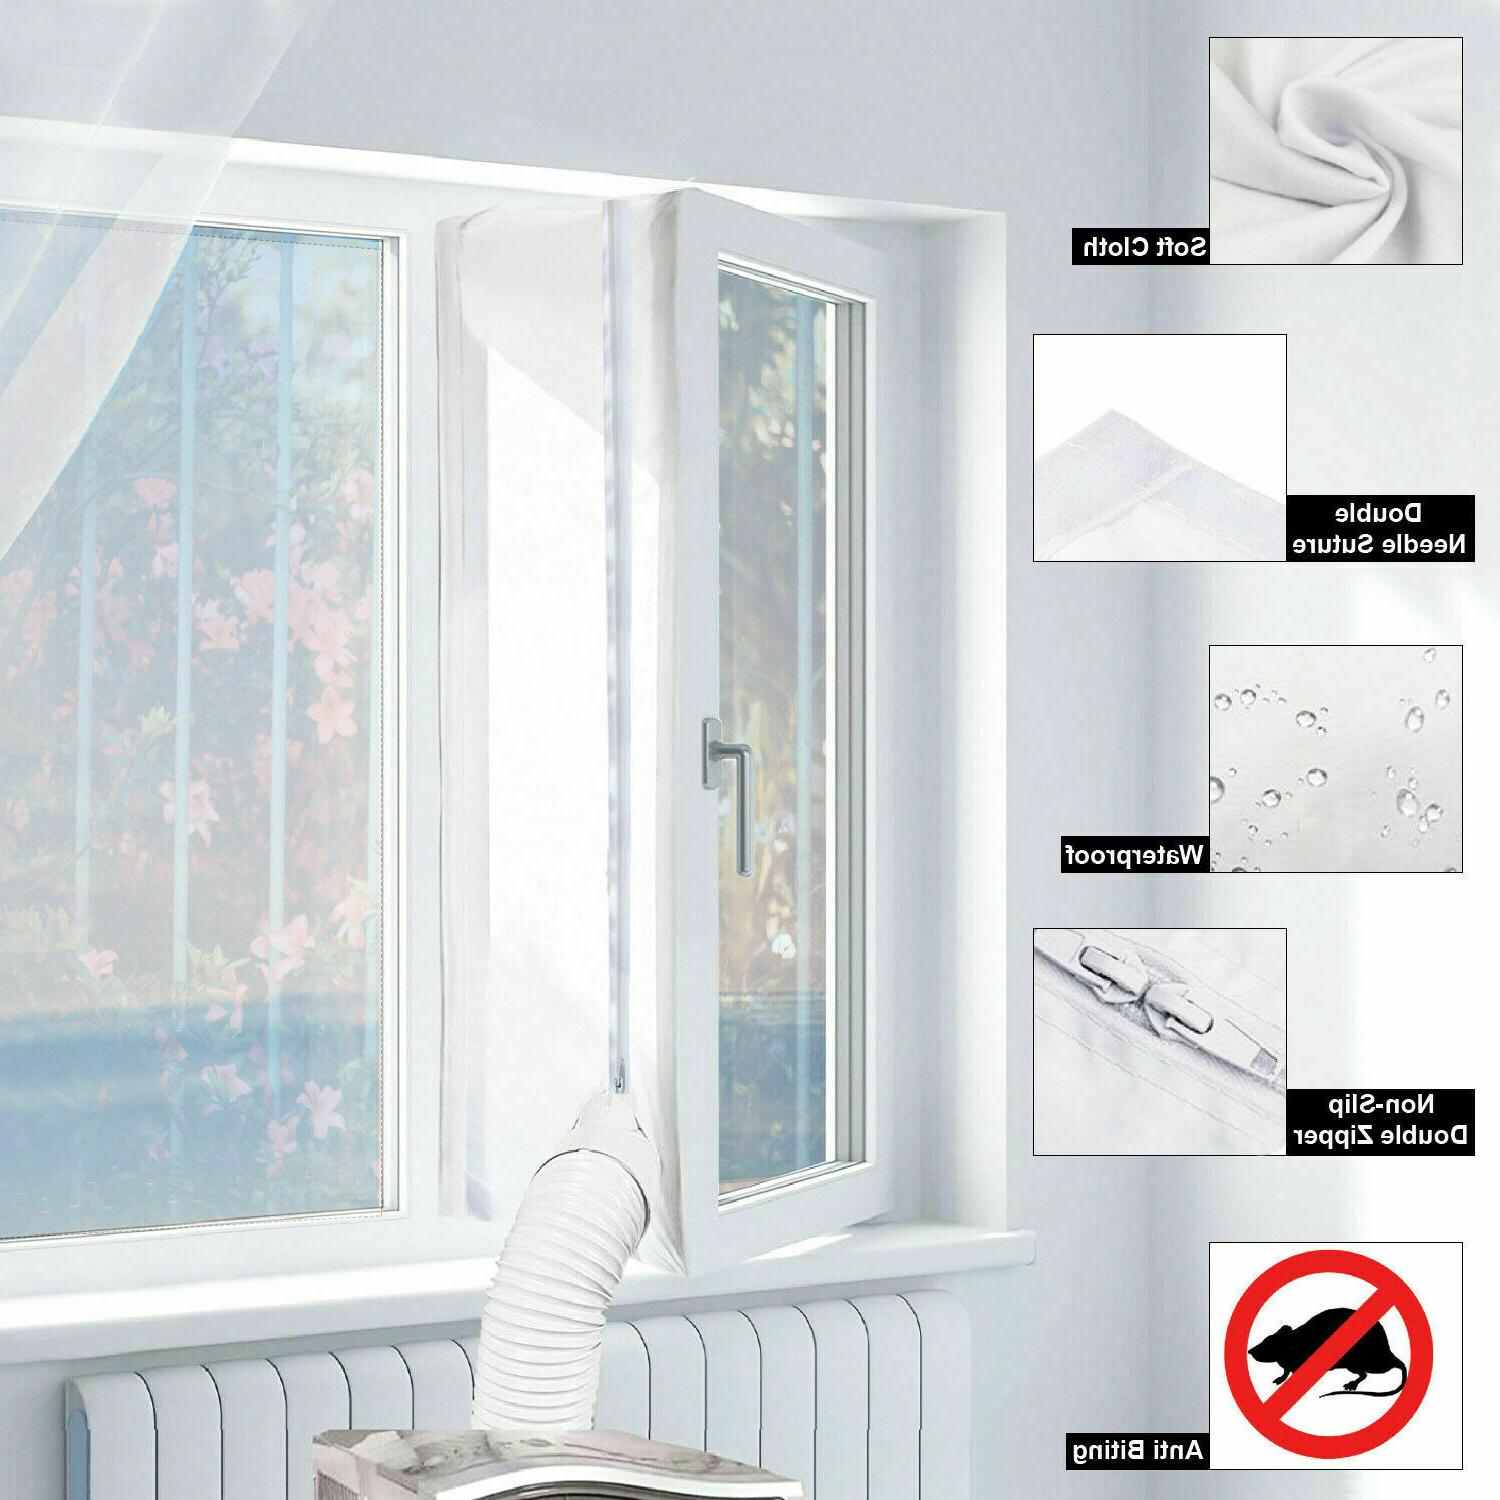 Window Seal Portable for air Dryer